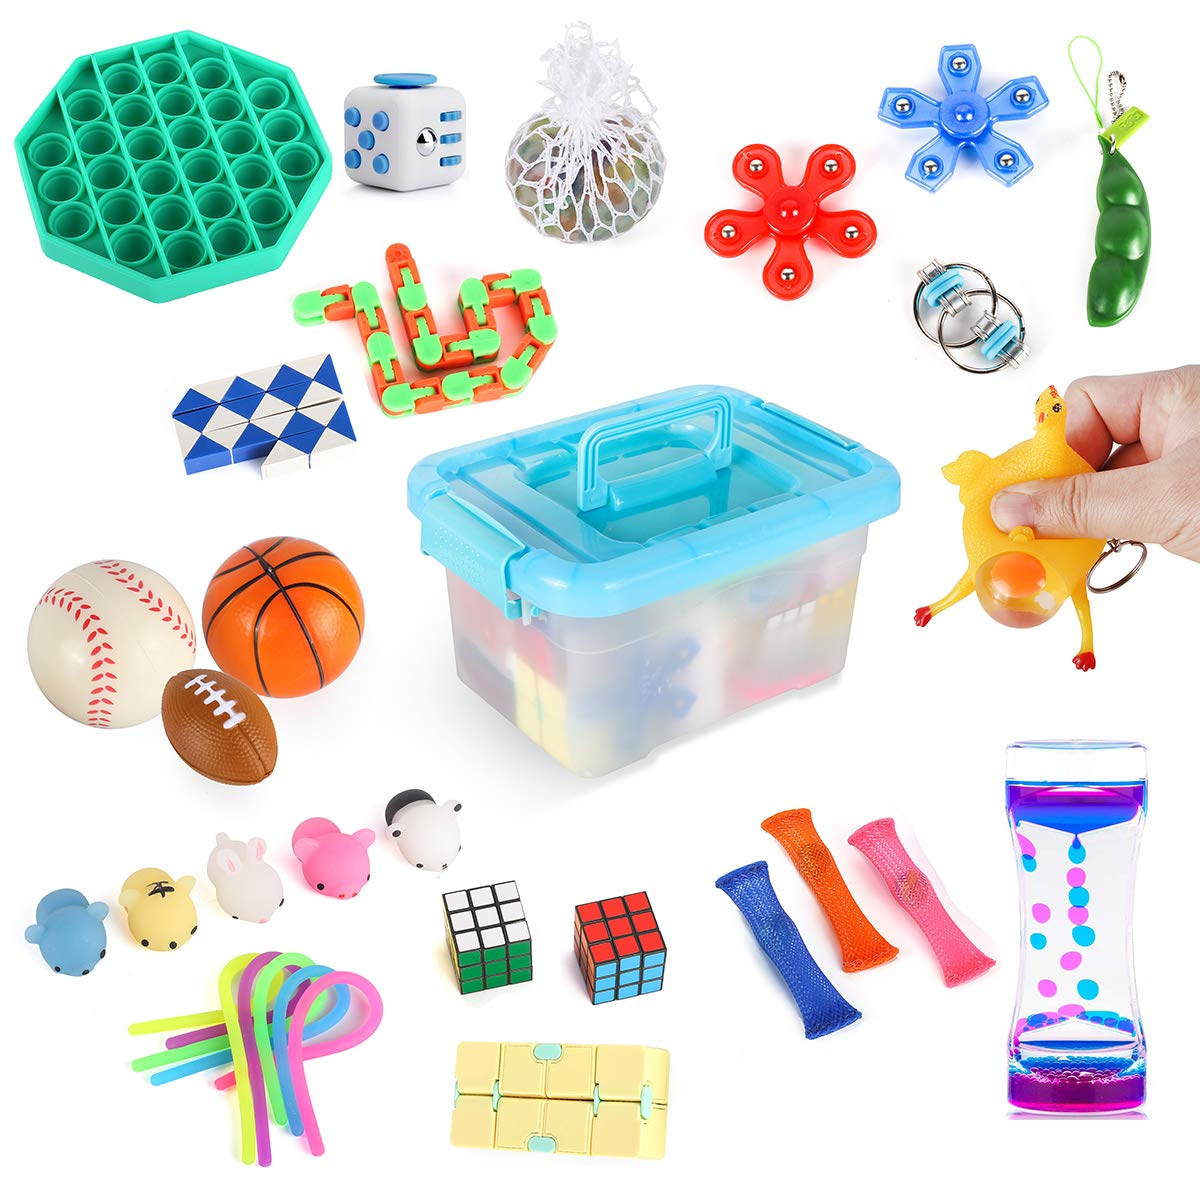 Fidget Toys Pack Set with Stress Balls Spinner Infinity Cube Tangle Simple Dimple Fidget Popper Push Pop Bubble Bike Chain Liquid Motion Timer Pea Stretchy String Snake Marble Mesh Sensory Toy Box